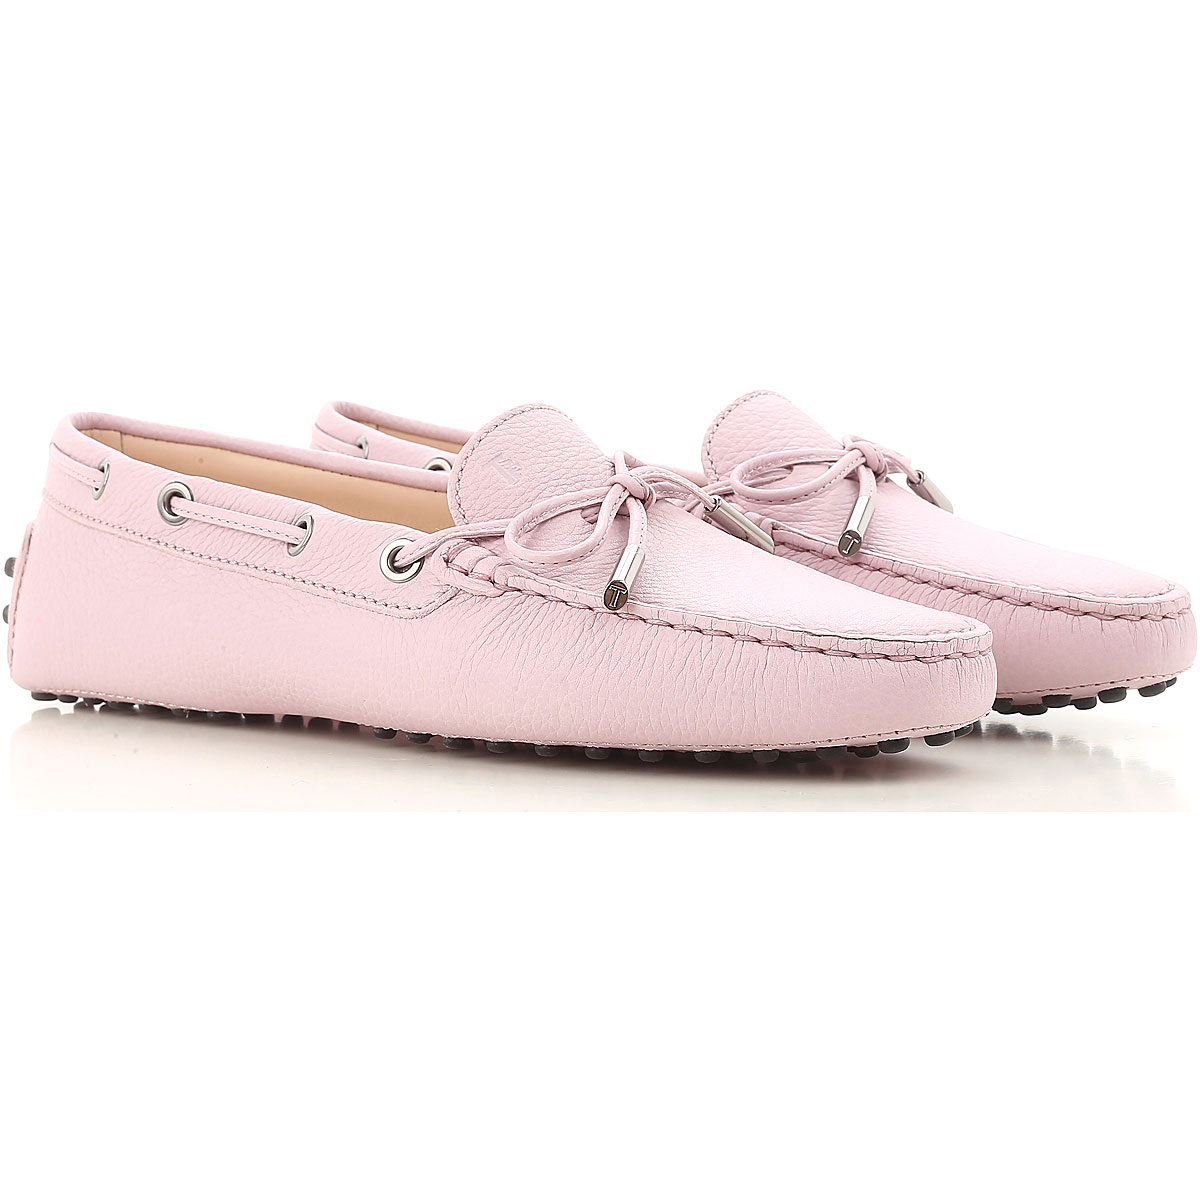 Tods Loafers for Women Mauve USA - GOOFASH